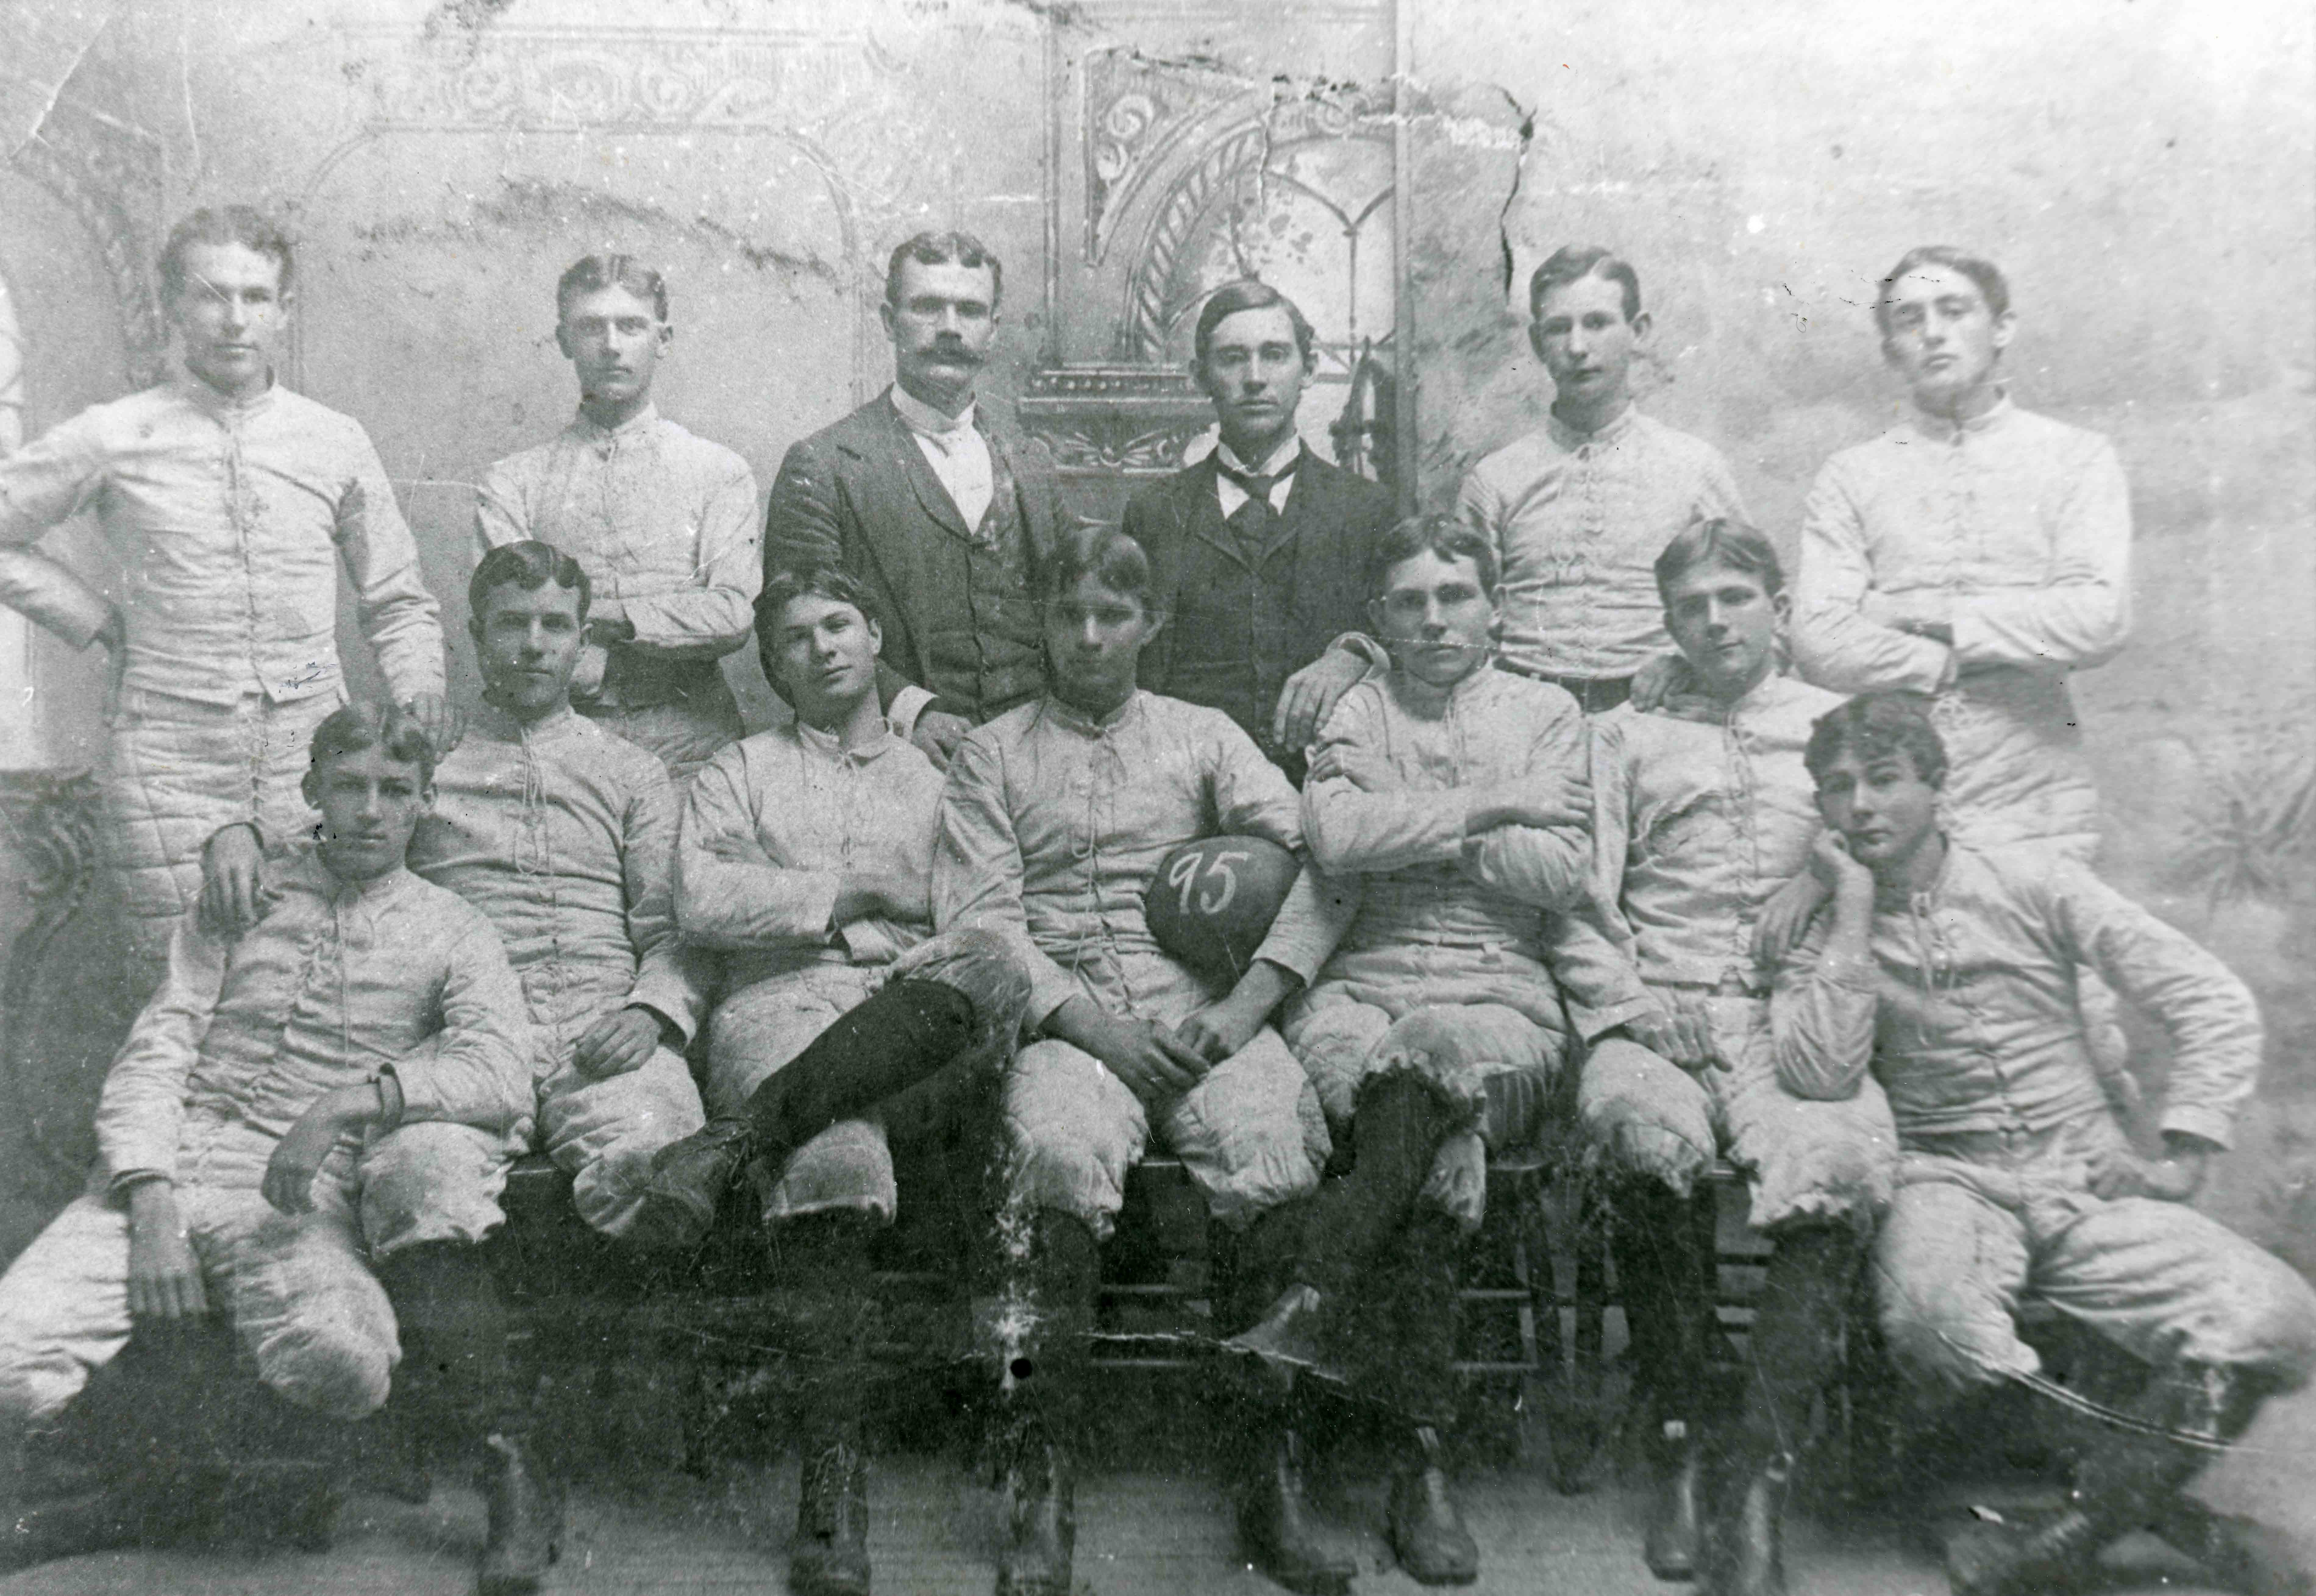 Historic photo of first Ouachita football team